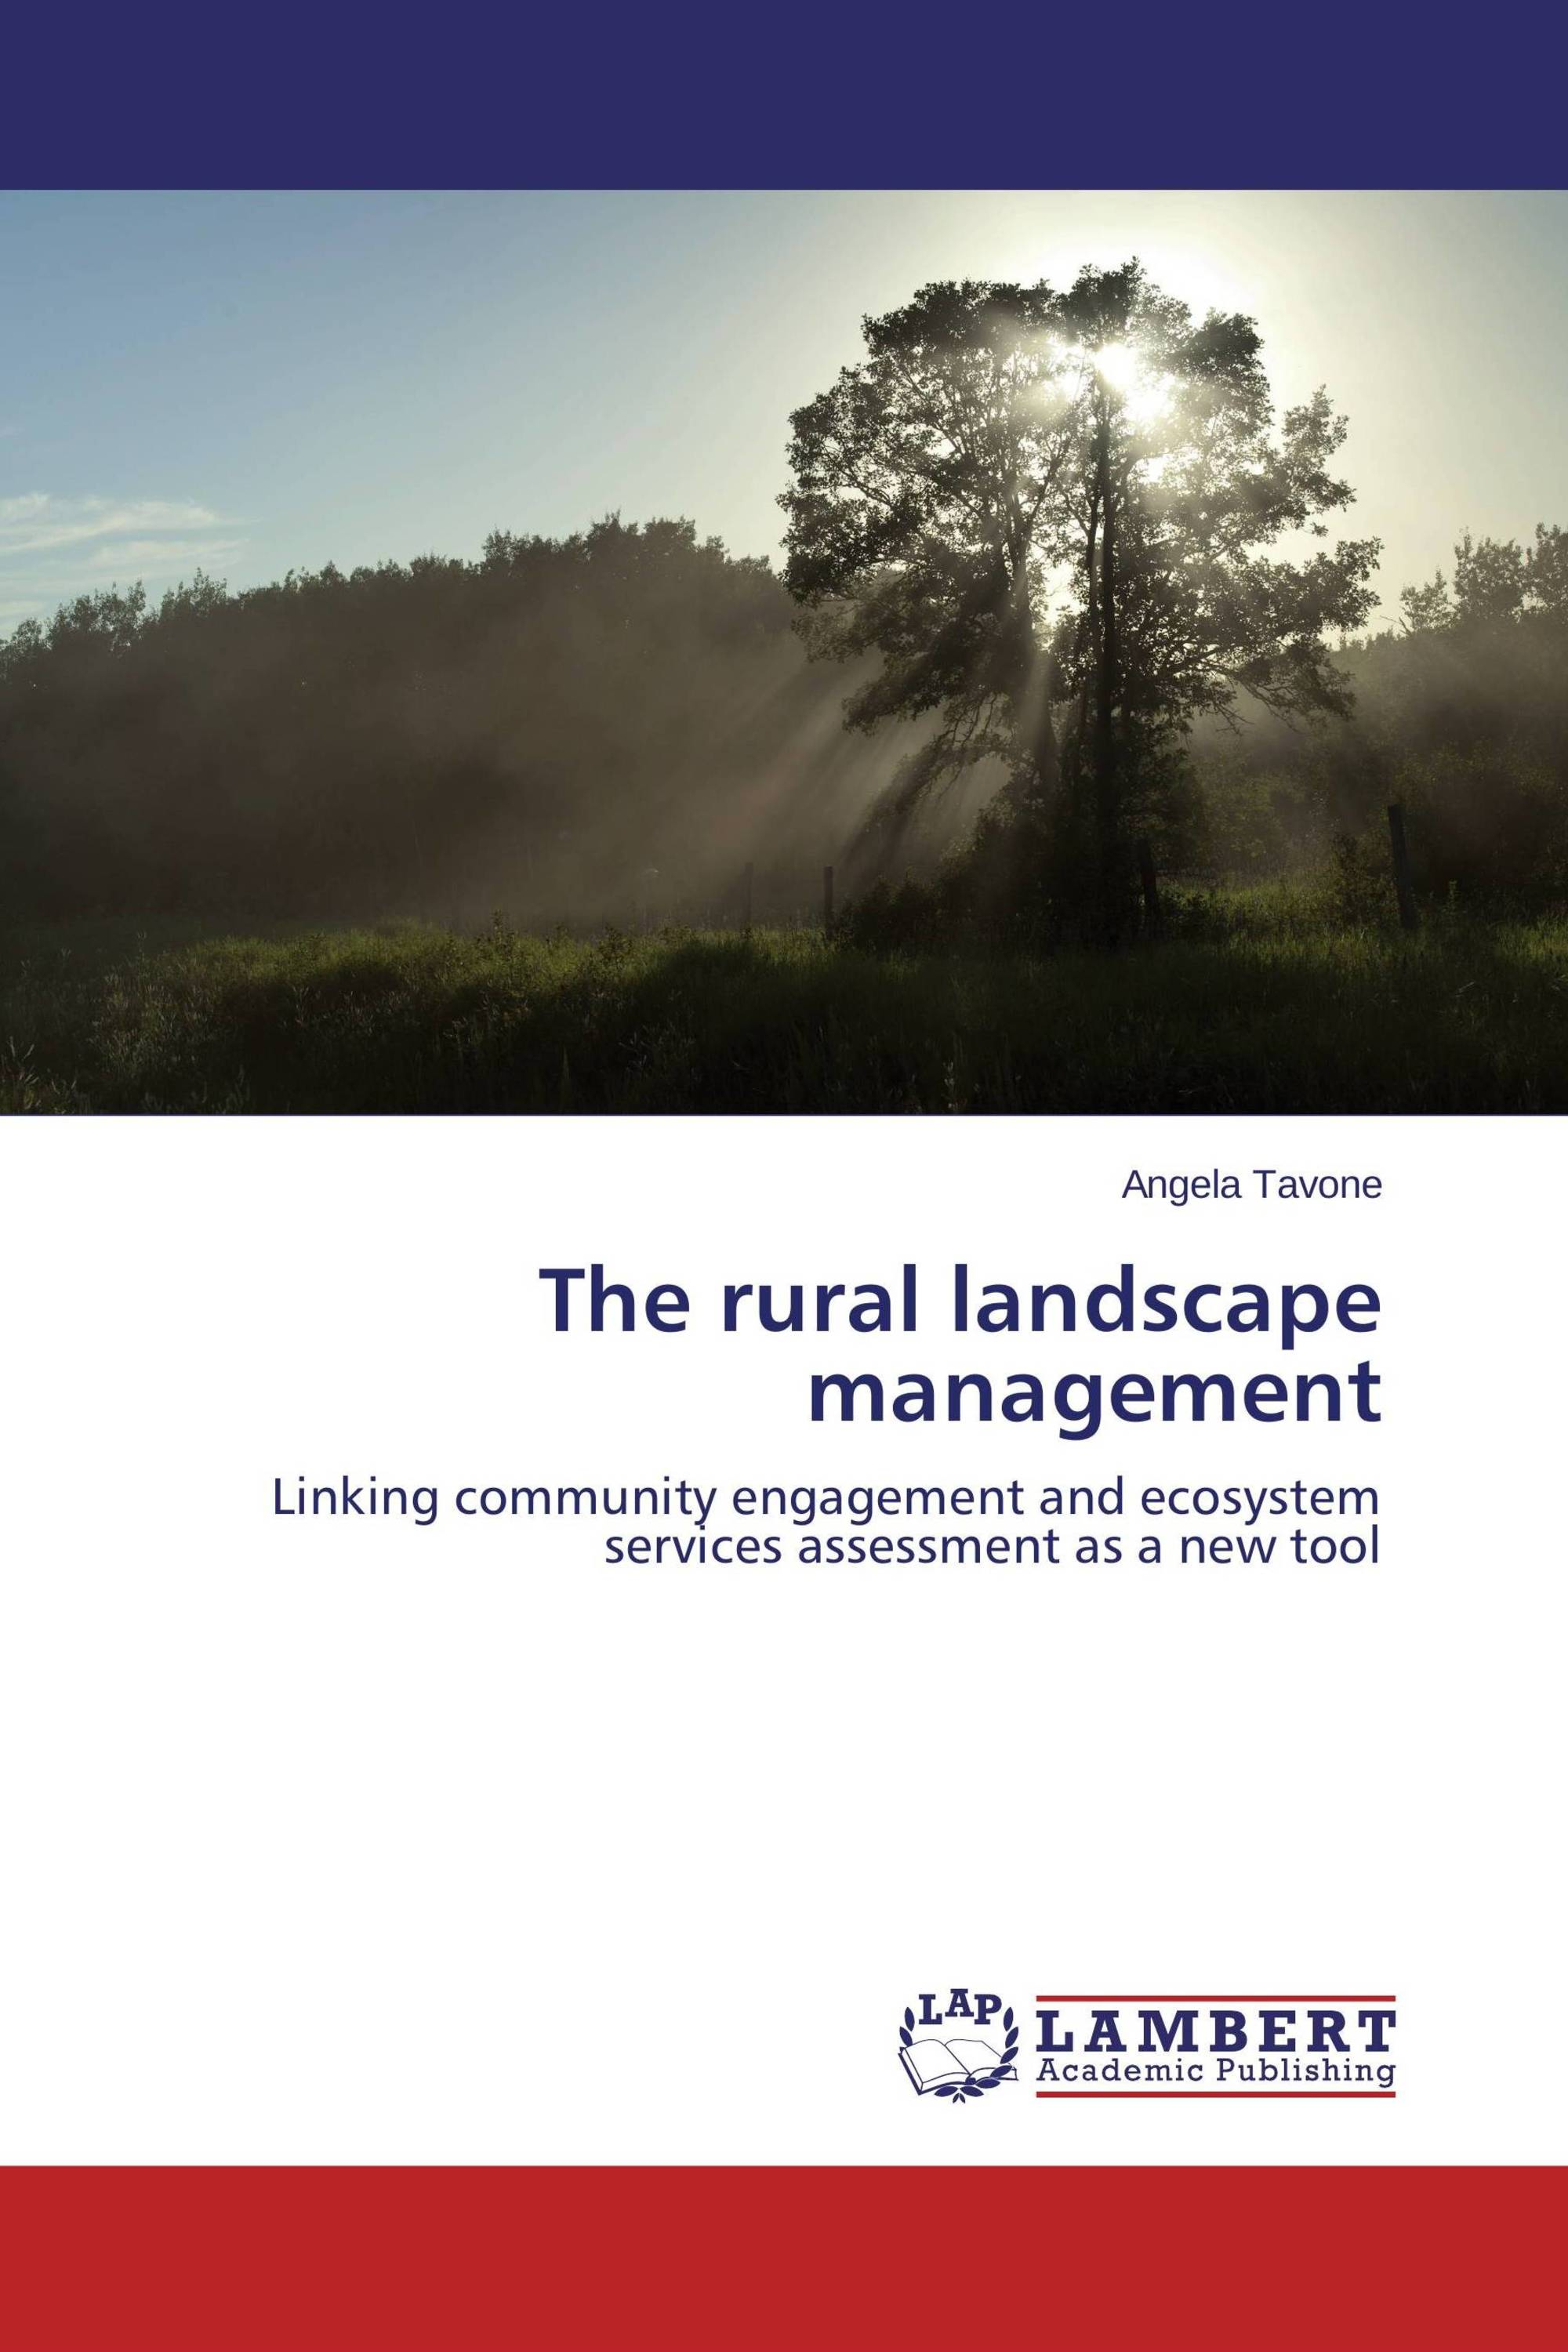 The rural landscape management